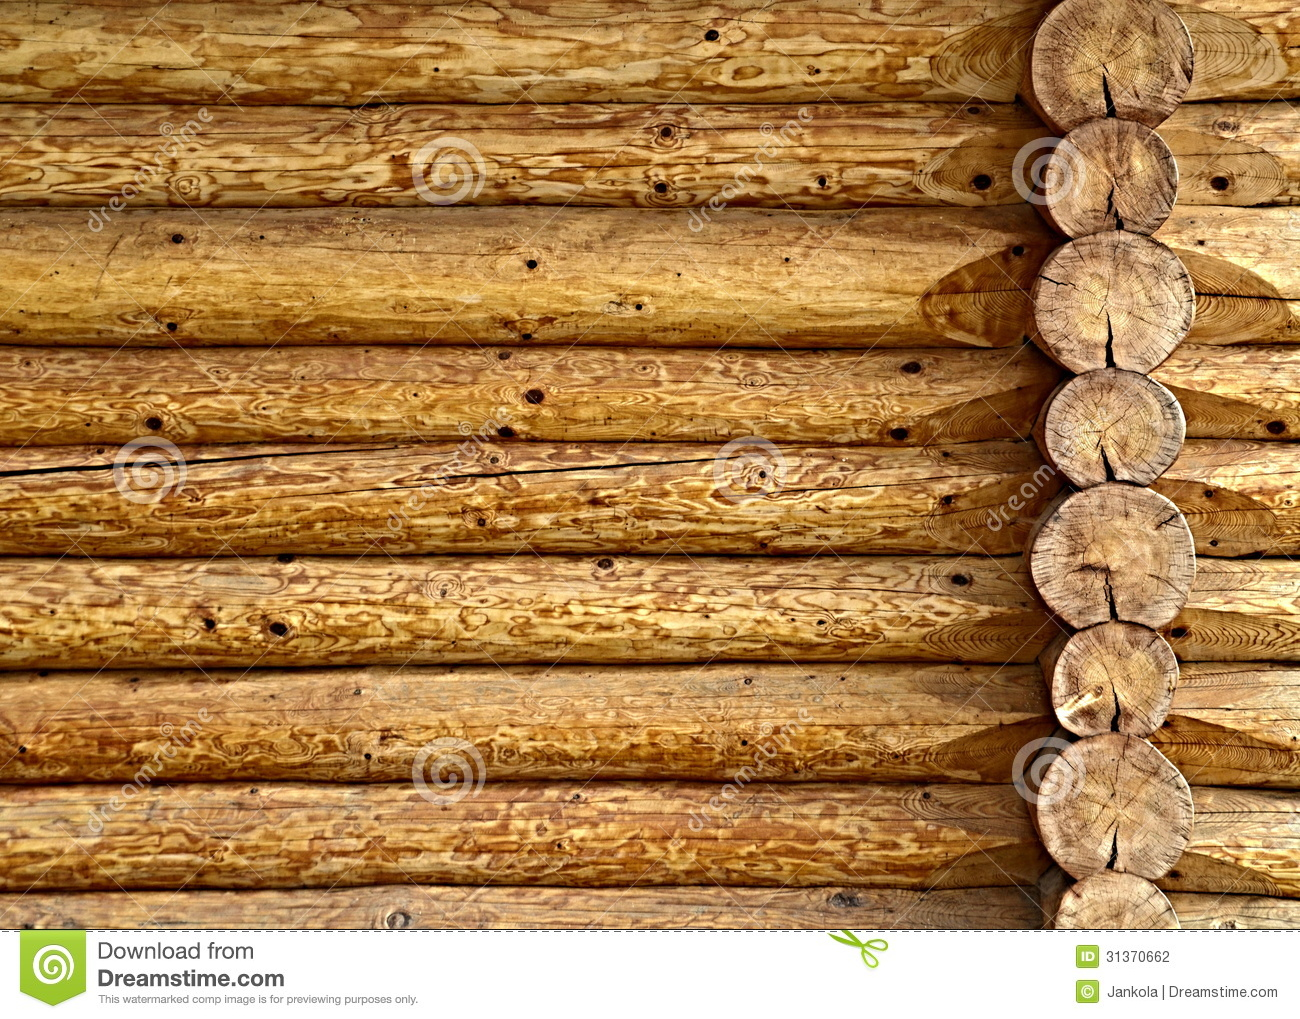 Log Cabin Wall A wooden log cabin wall 1300x1019